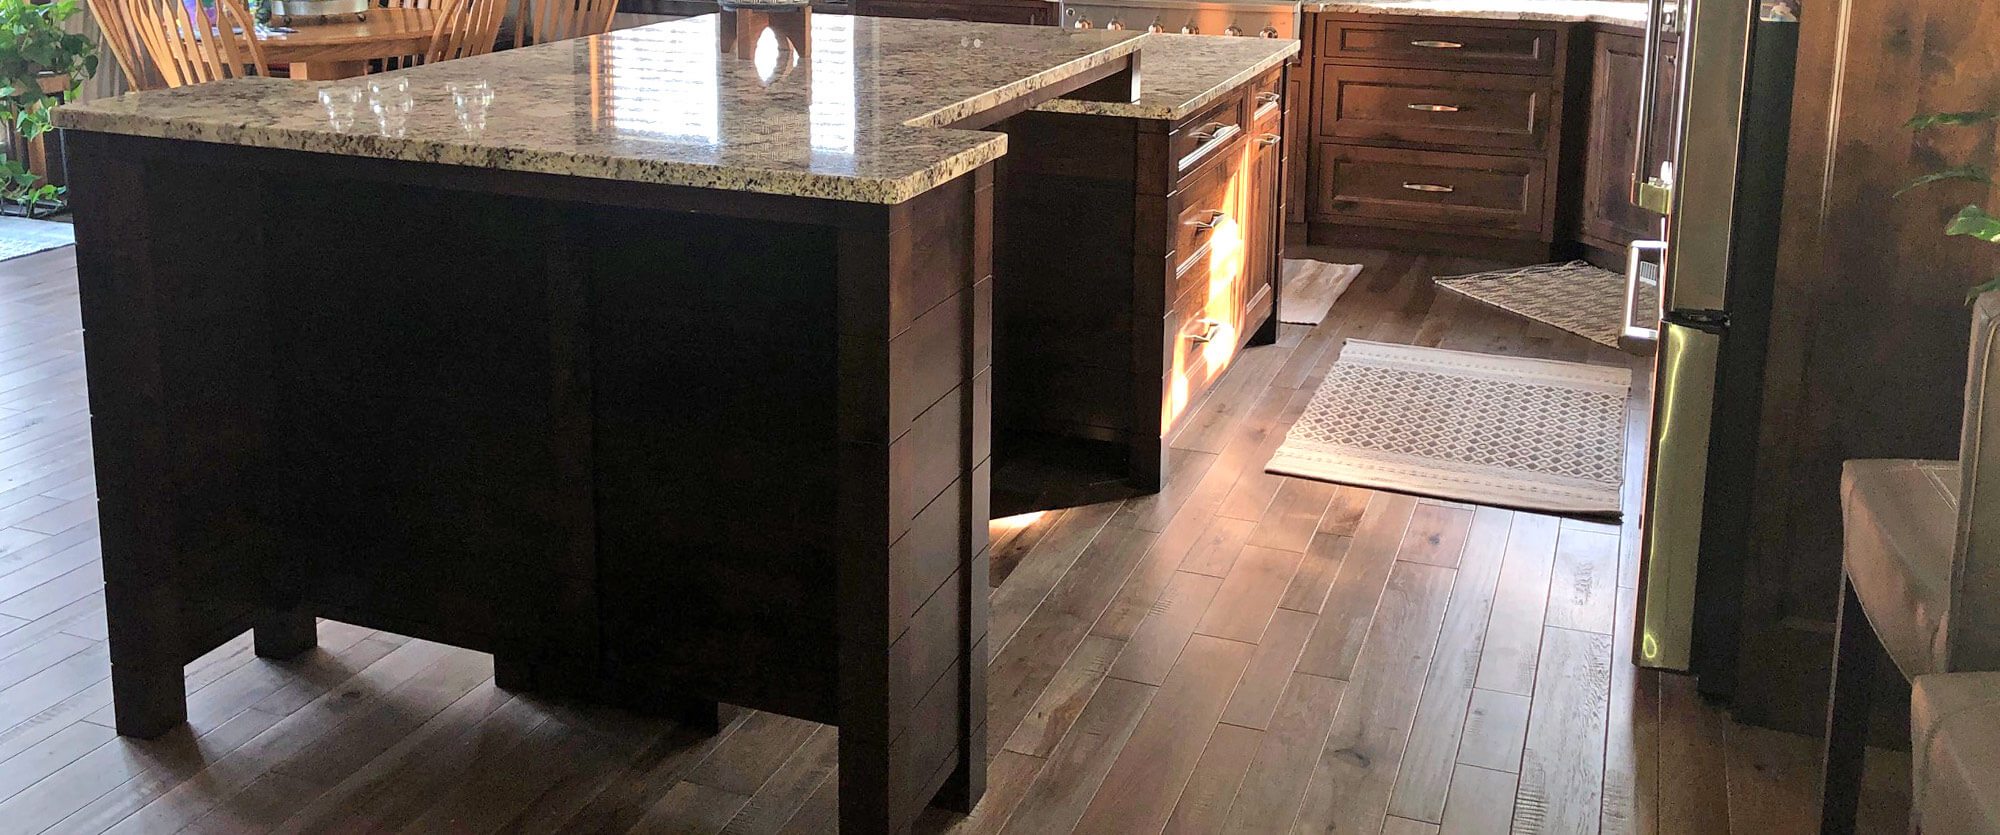 Oversized custom kitchen island made of Alder; designed, built, and installed by finewood Structures of Browerville, MN